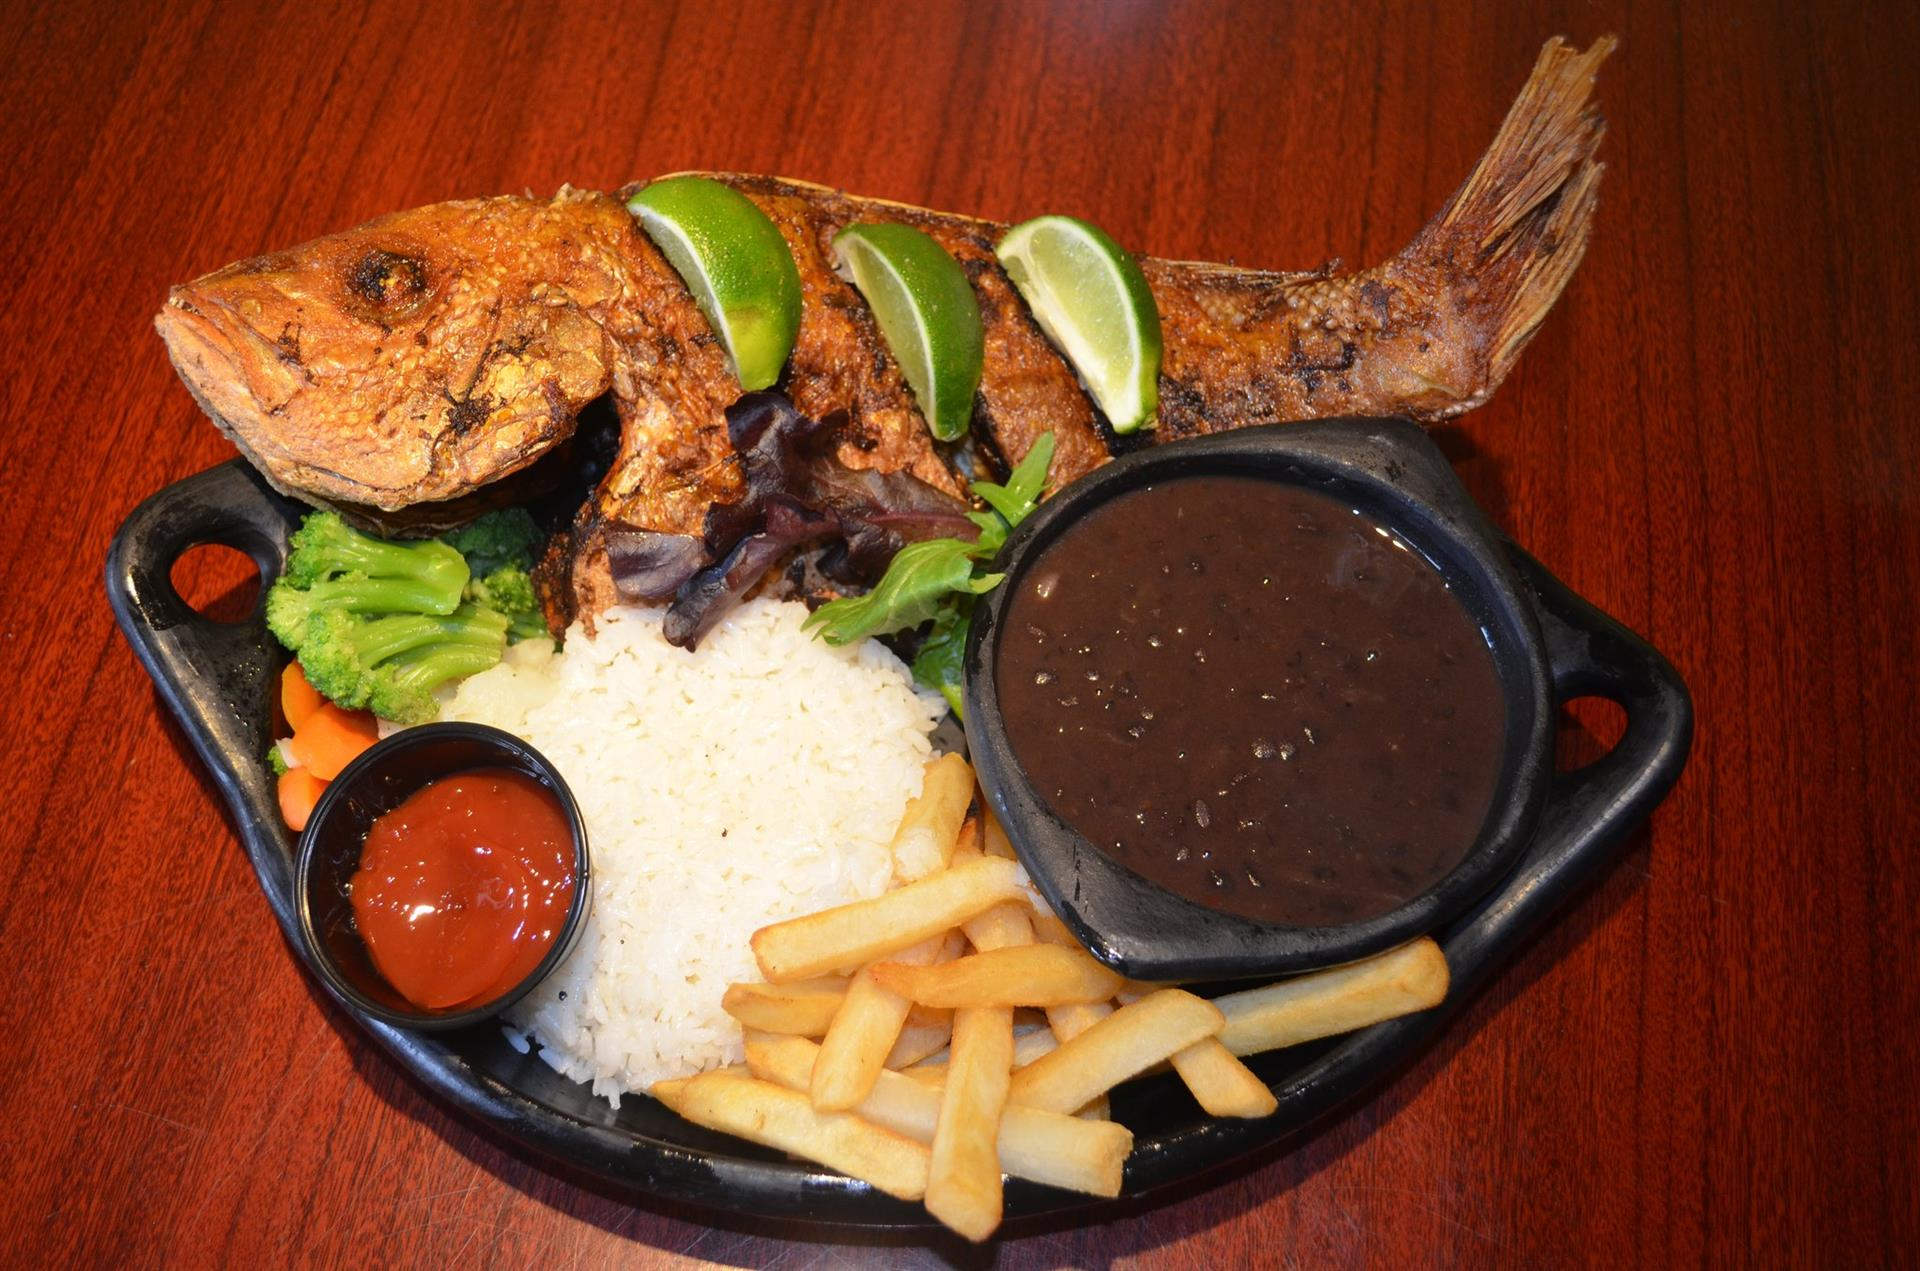 Pargo Rojo Frito: Whole fried red snapper. Served with white rice, green plantains, fried yuca, & a house salad.